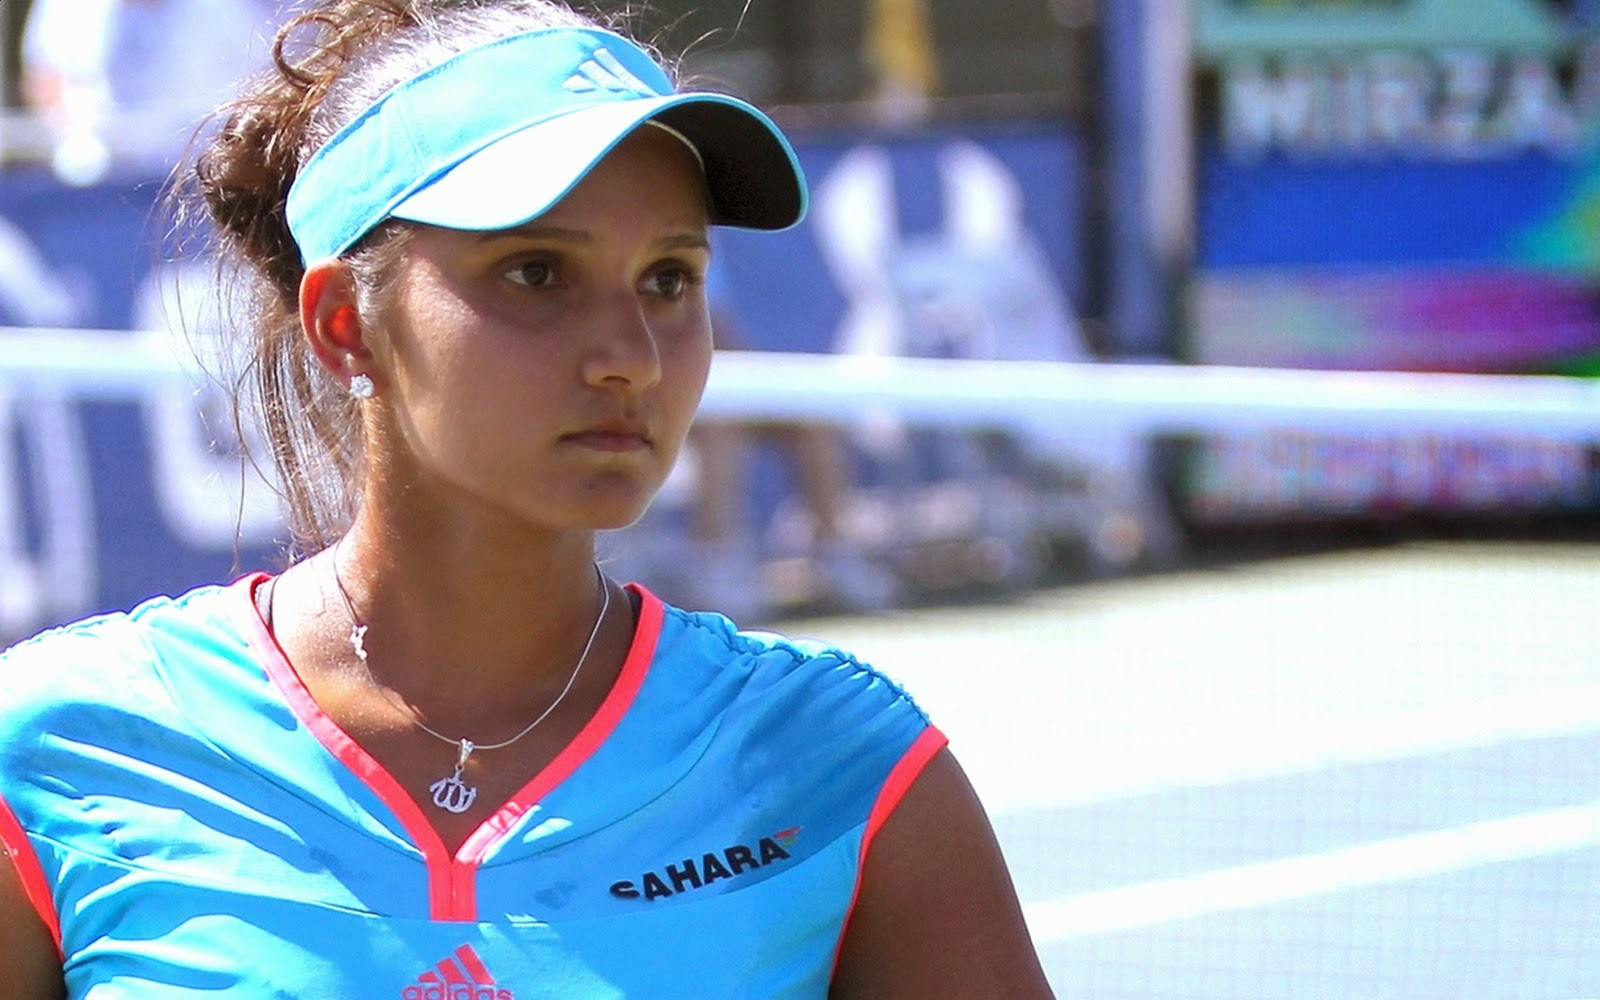 Sania Mirza Hd Wallpapers  Hd Wallpapers  Download Free -8947